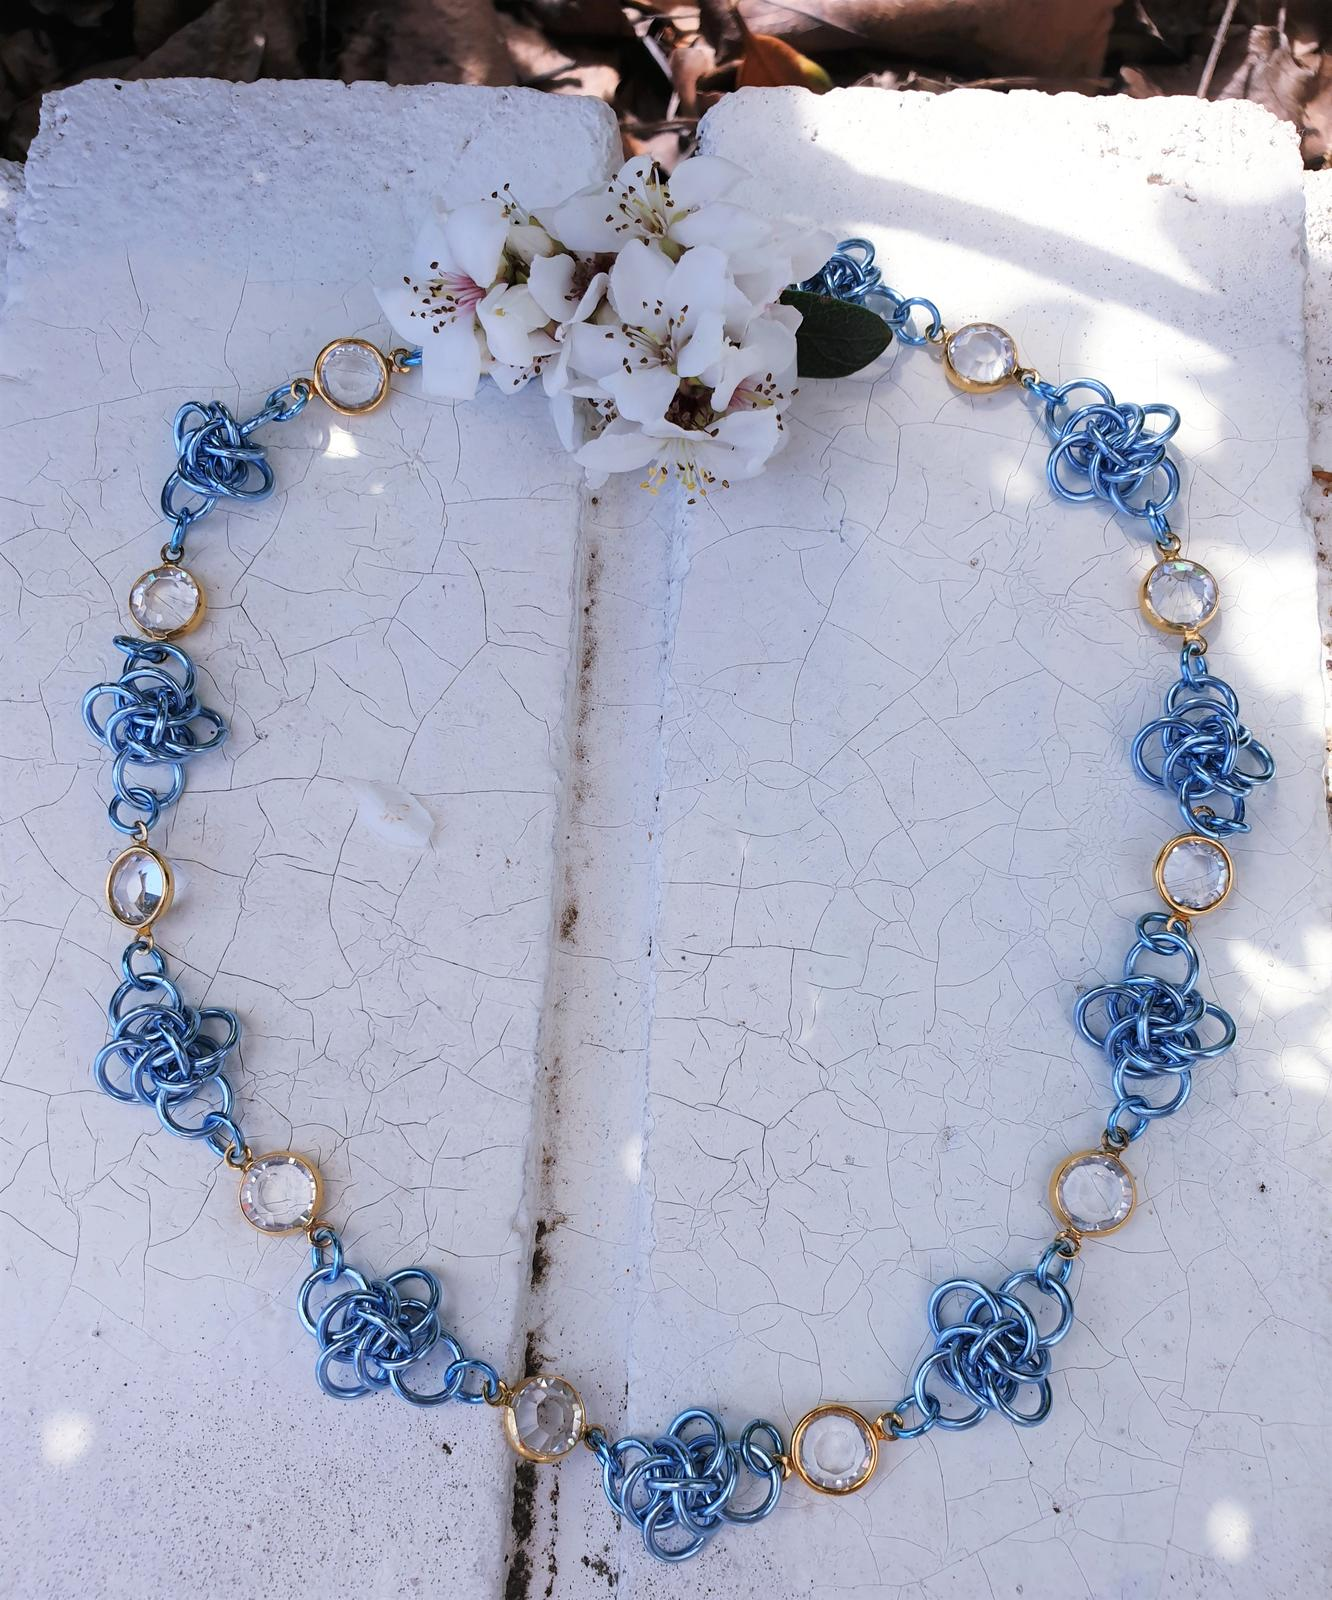 Persephone crystal necklace